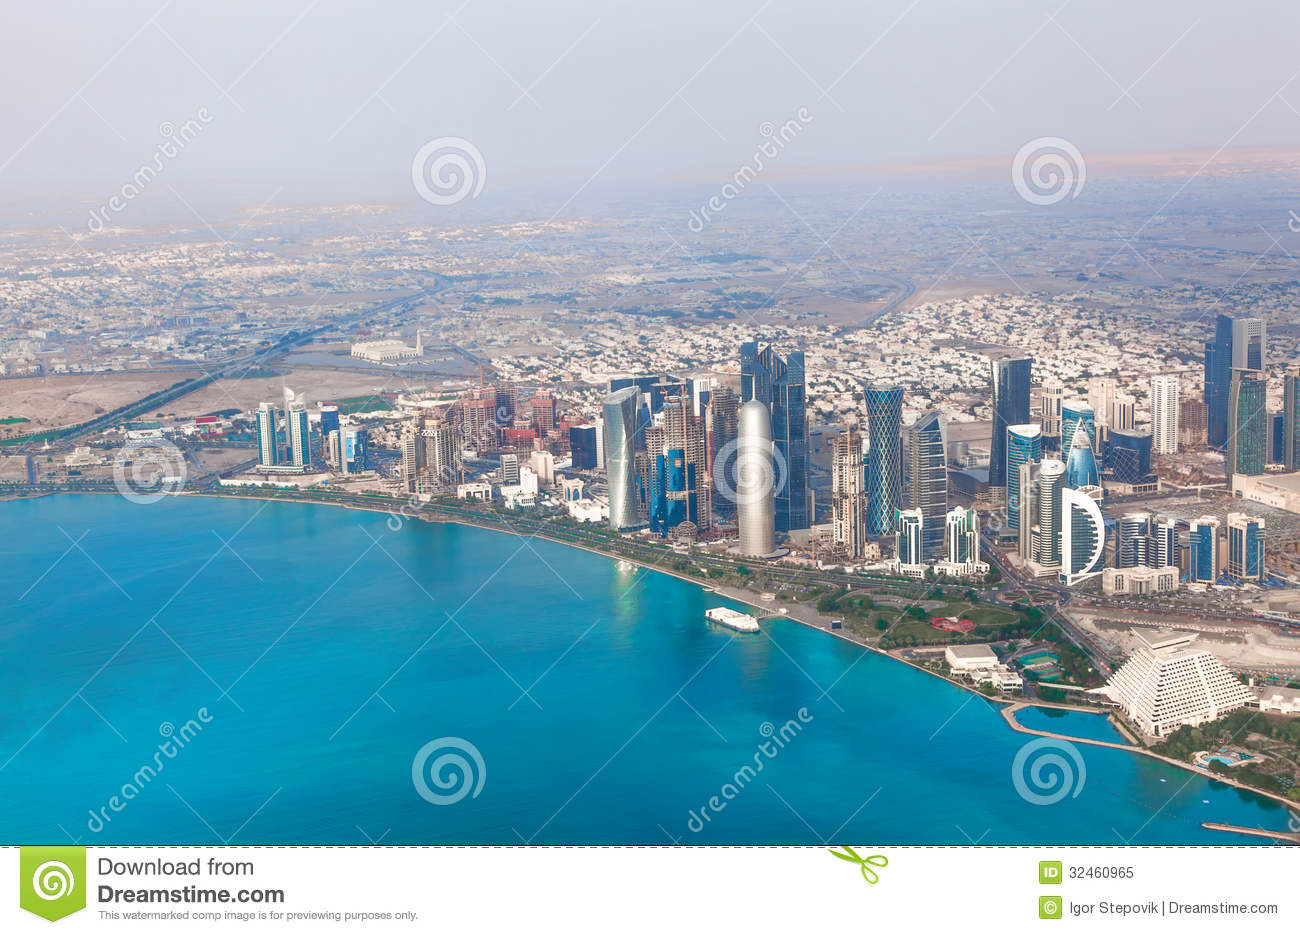 doha qatar map with Royalty Free Stock Photo Doha Qatar Bird S Eye View Modern City Airplane Image32460965 on Watch in addition Contactus Conf additionally A350 1000 Gets Upgrade To 387 Seats We Analyse The Consequences also 1677 furthermore News item.